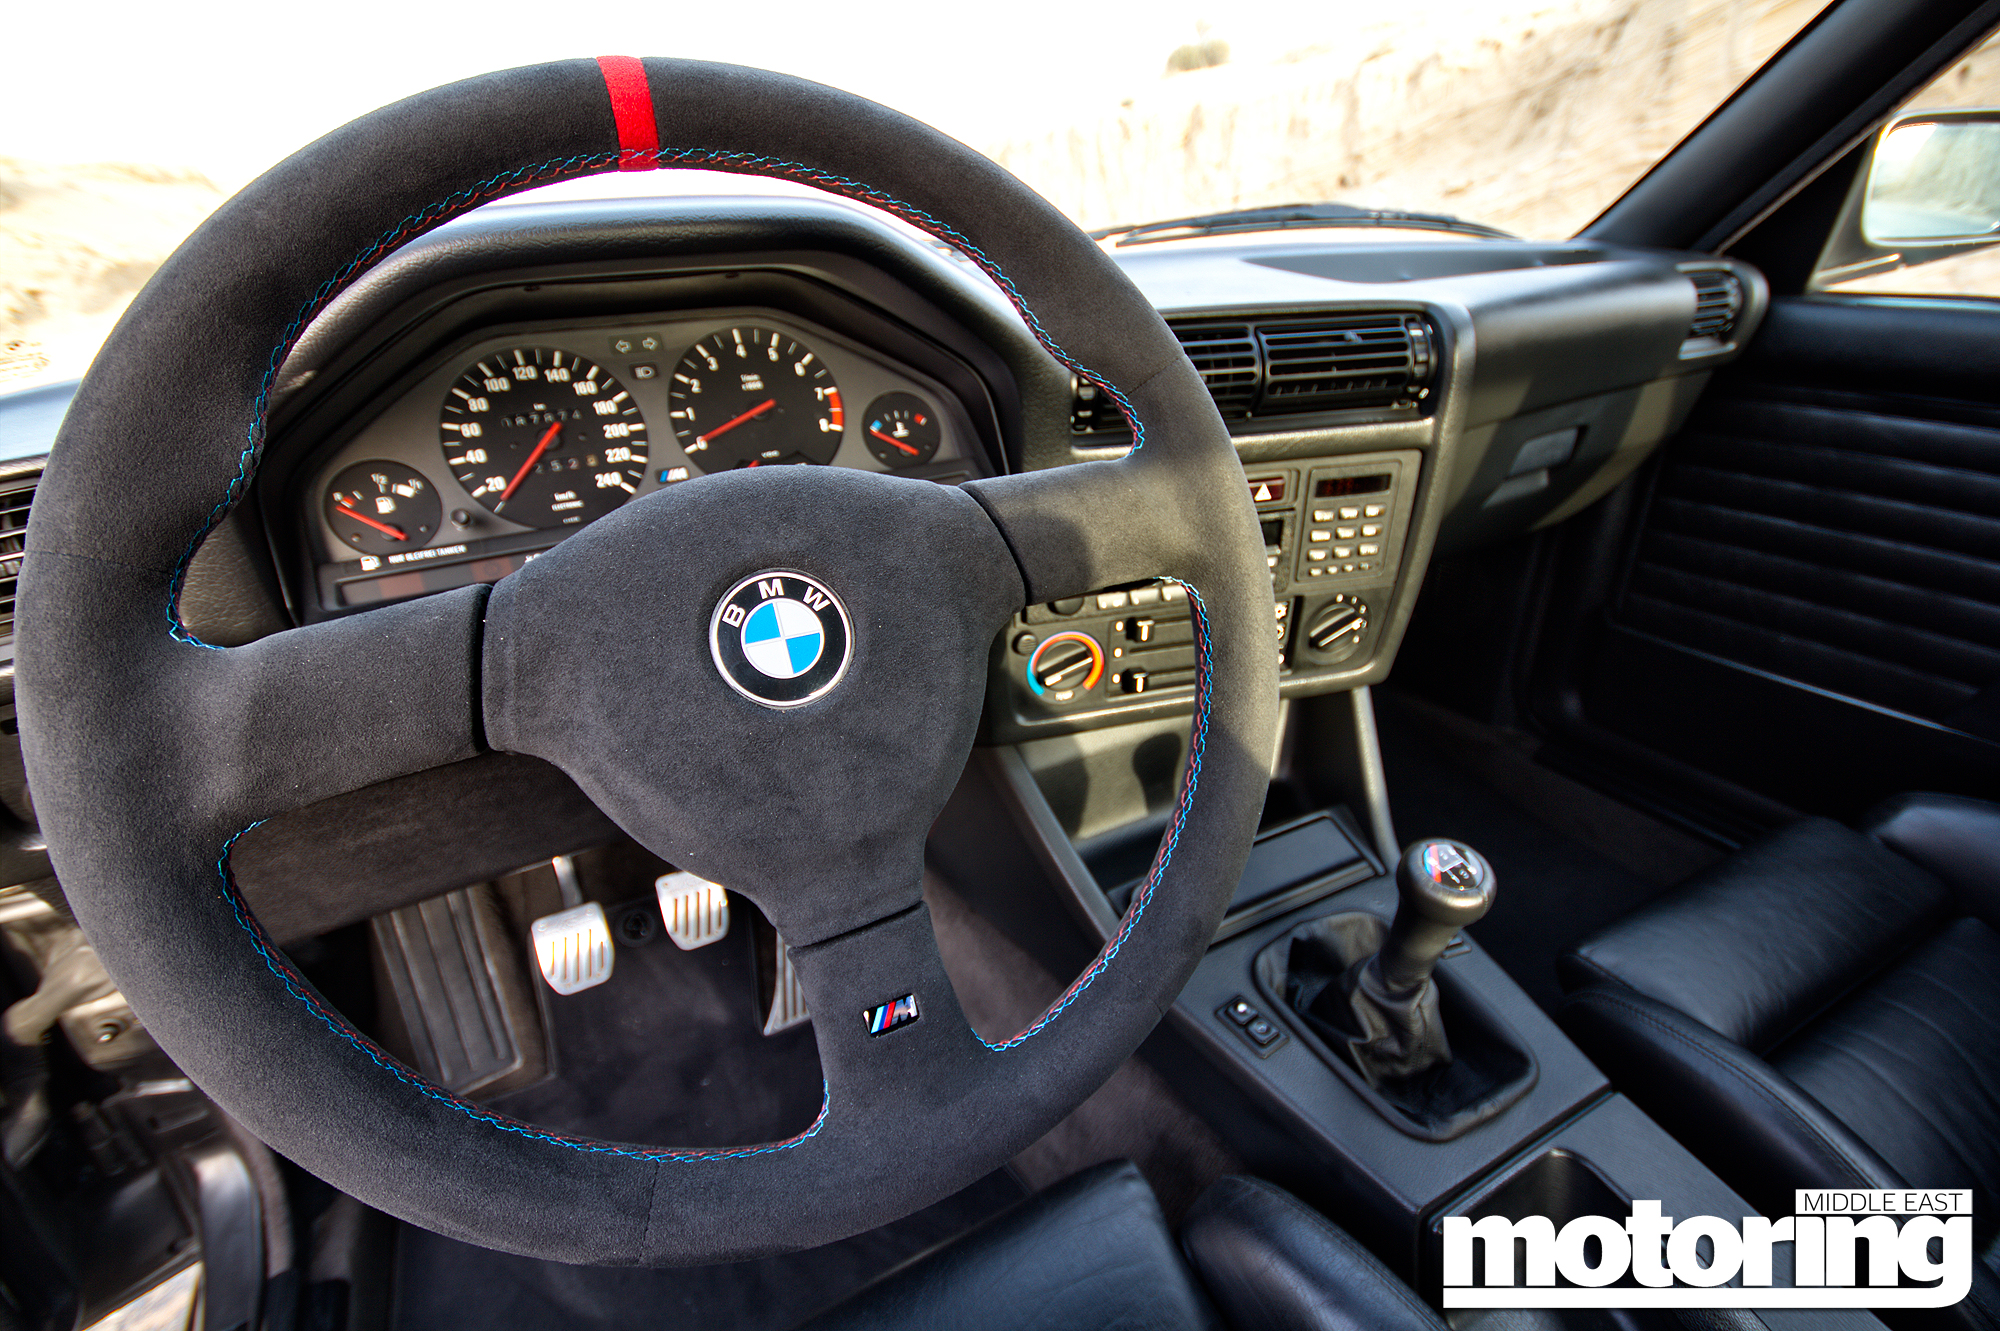 1987 BMW E30 M3 driven in Dubai - video!Motoring Middle East: Car ...